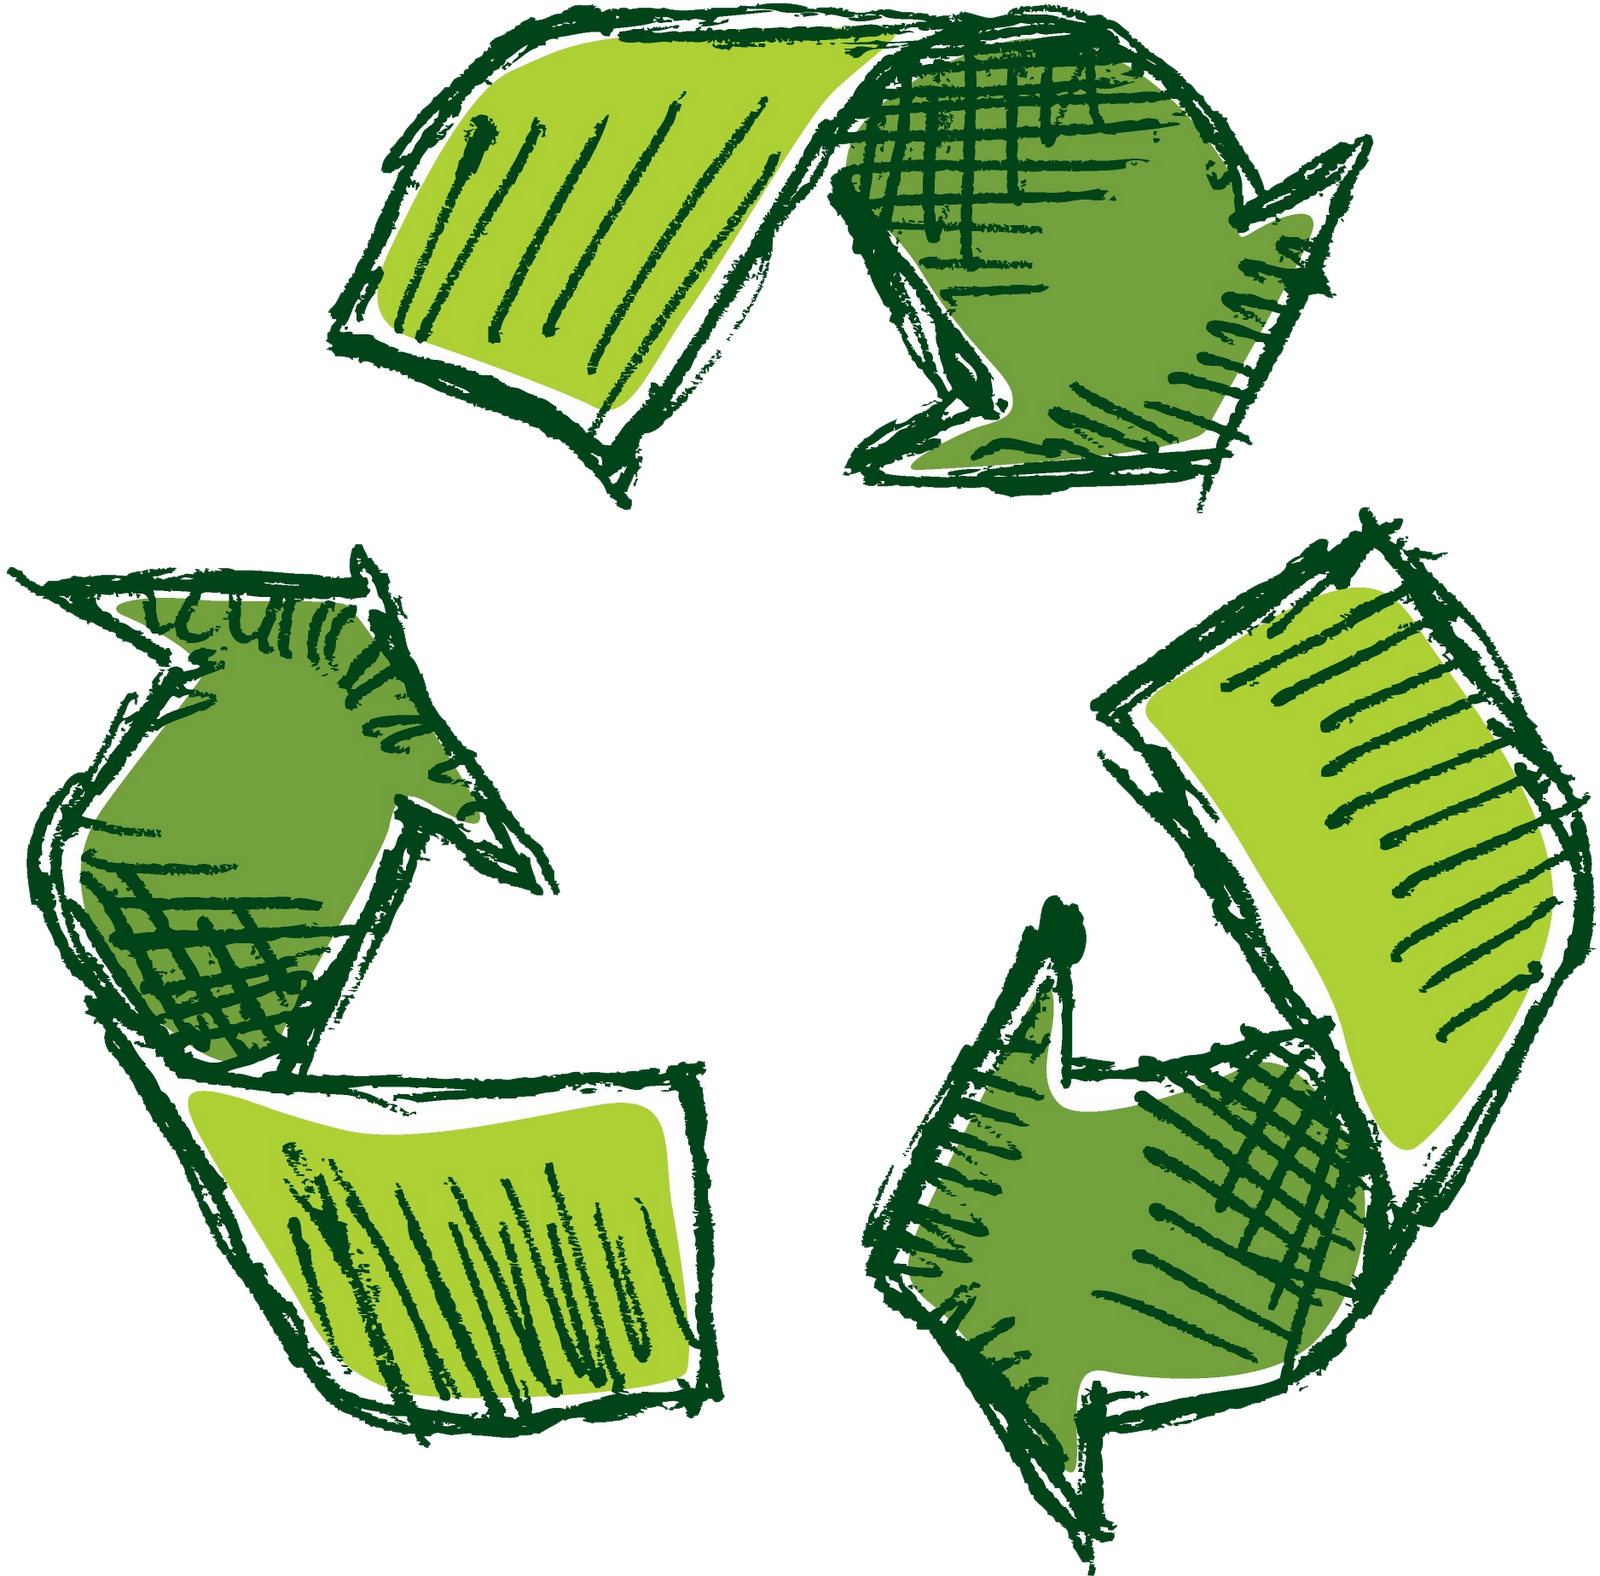 Canton ga recycling recyclefreedownloadpngpng. Newspaper clipart recycled paper